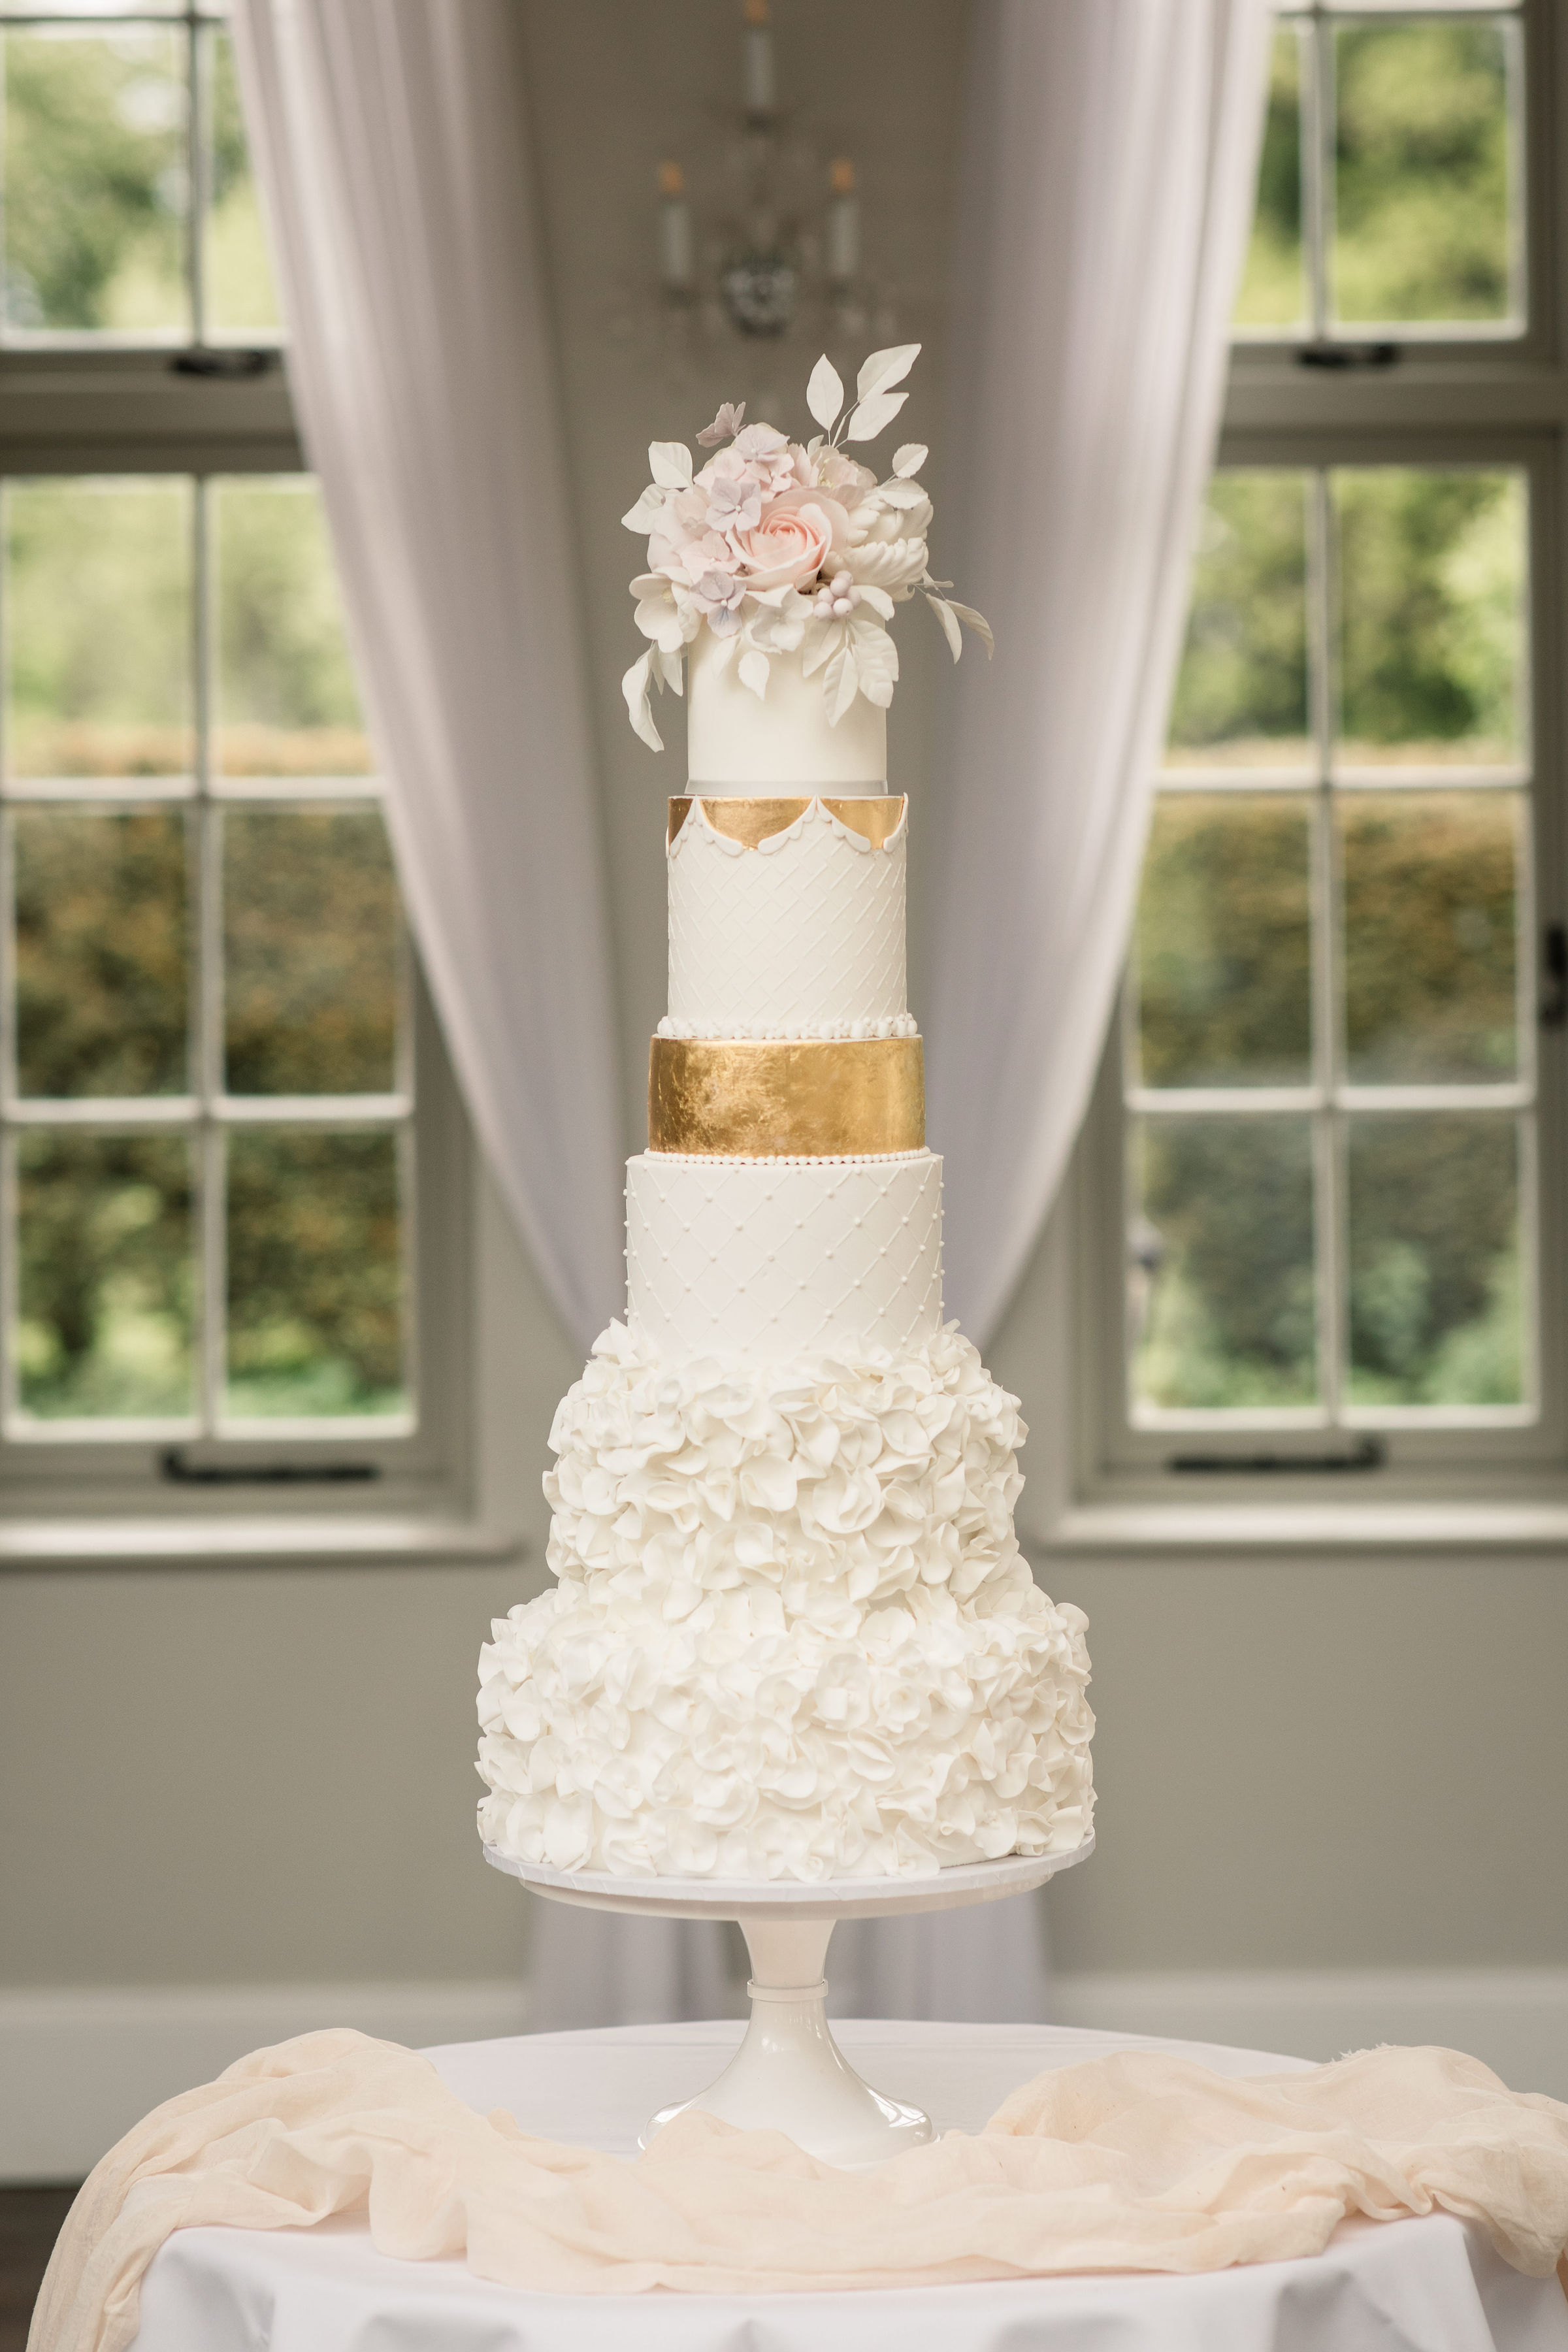 Offley Place Wedding Cake